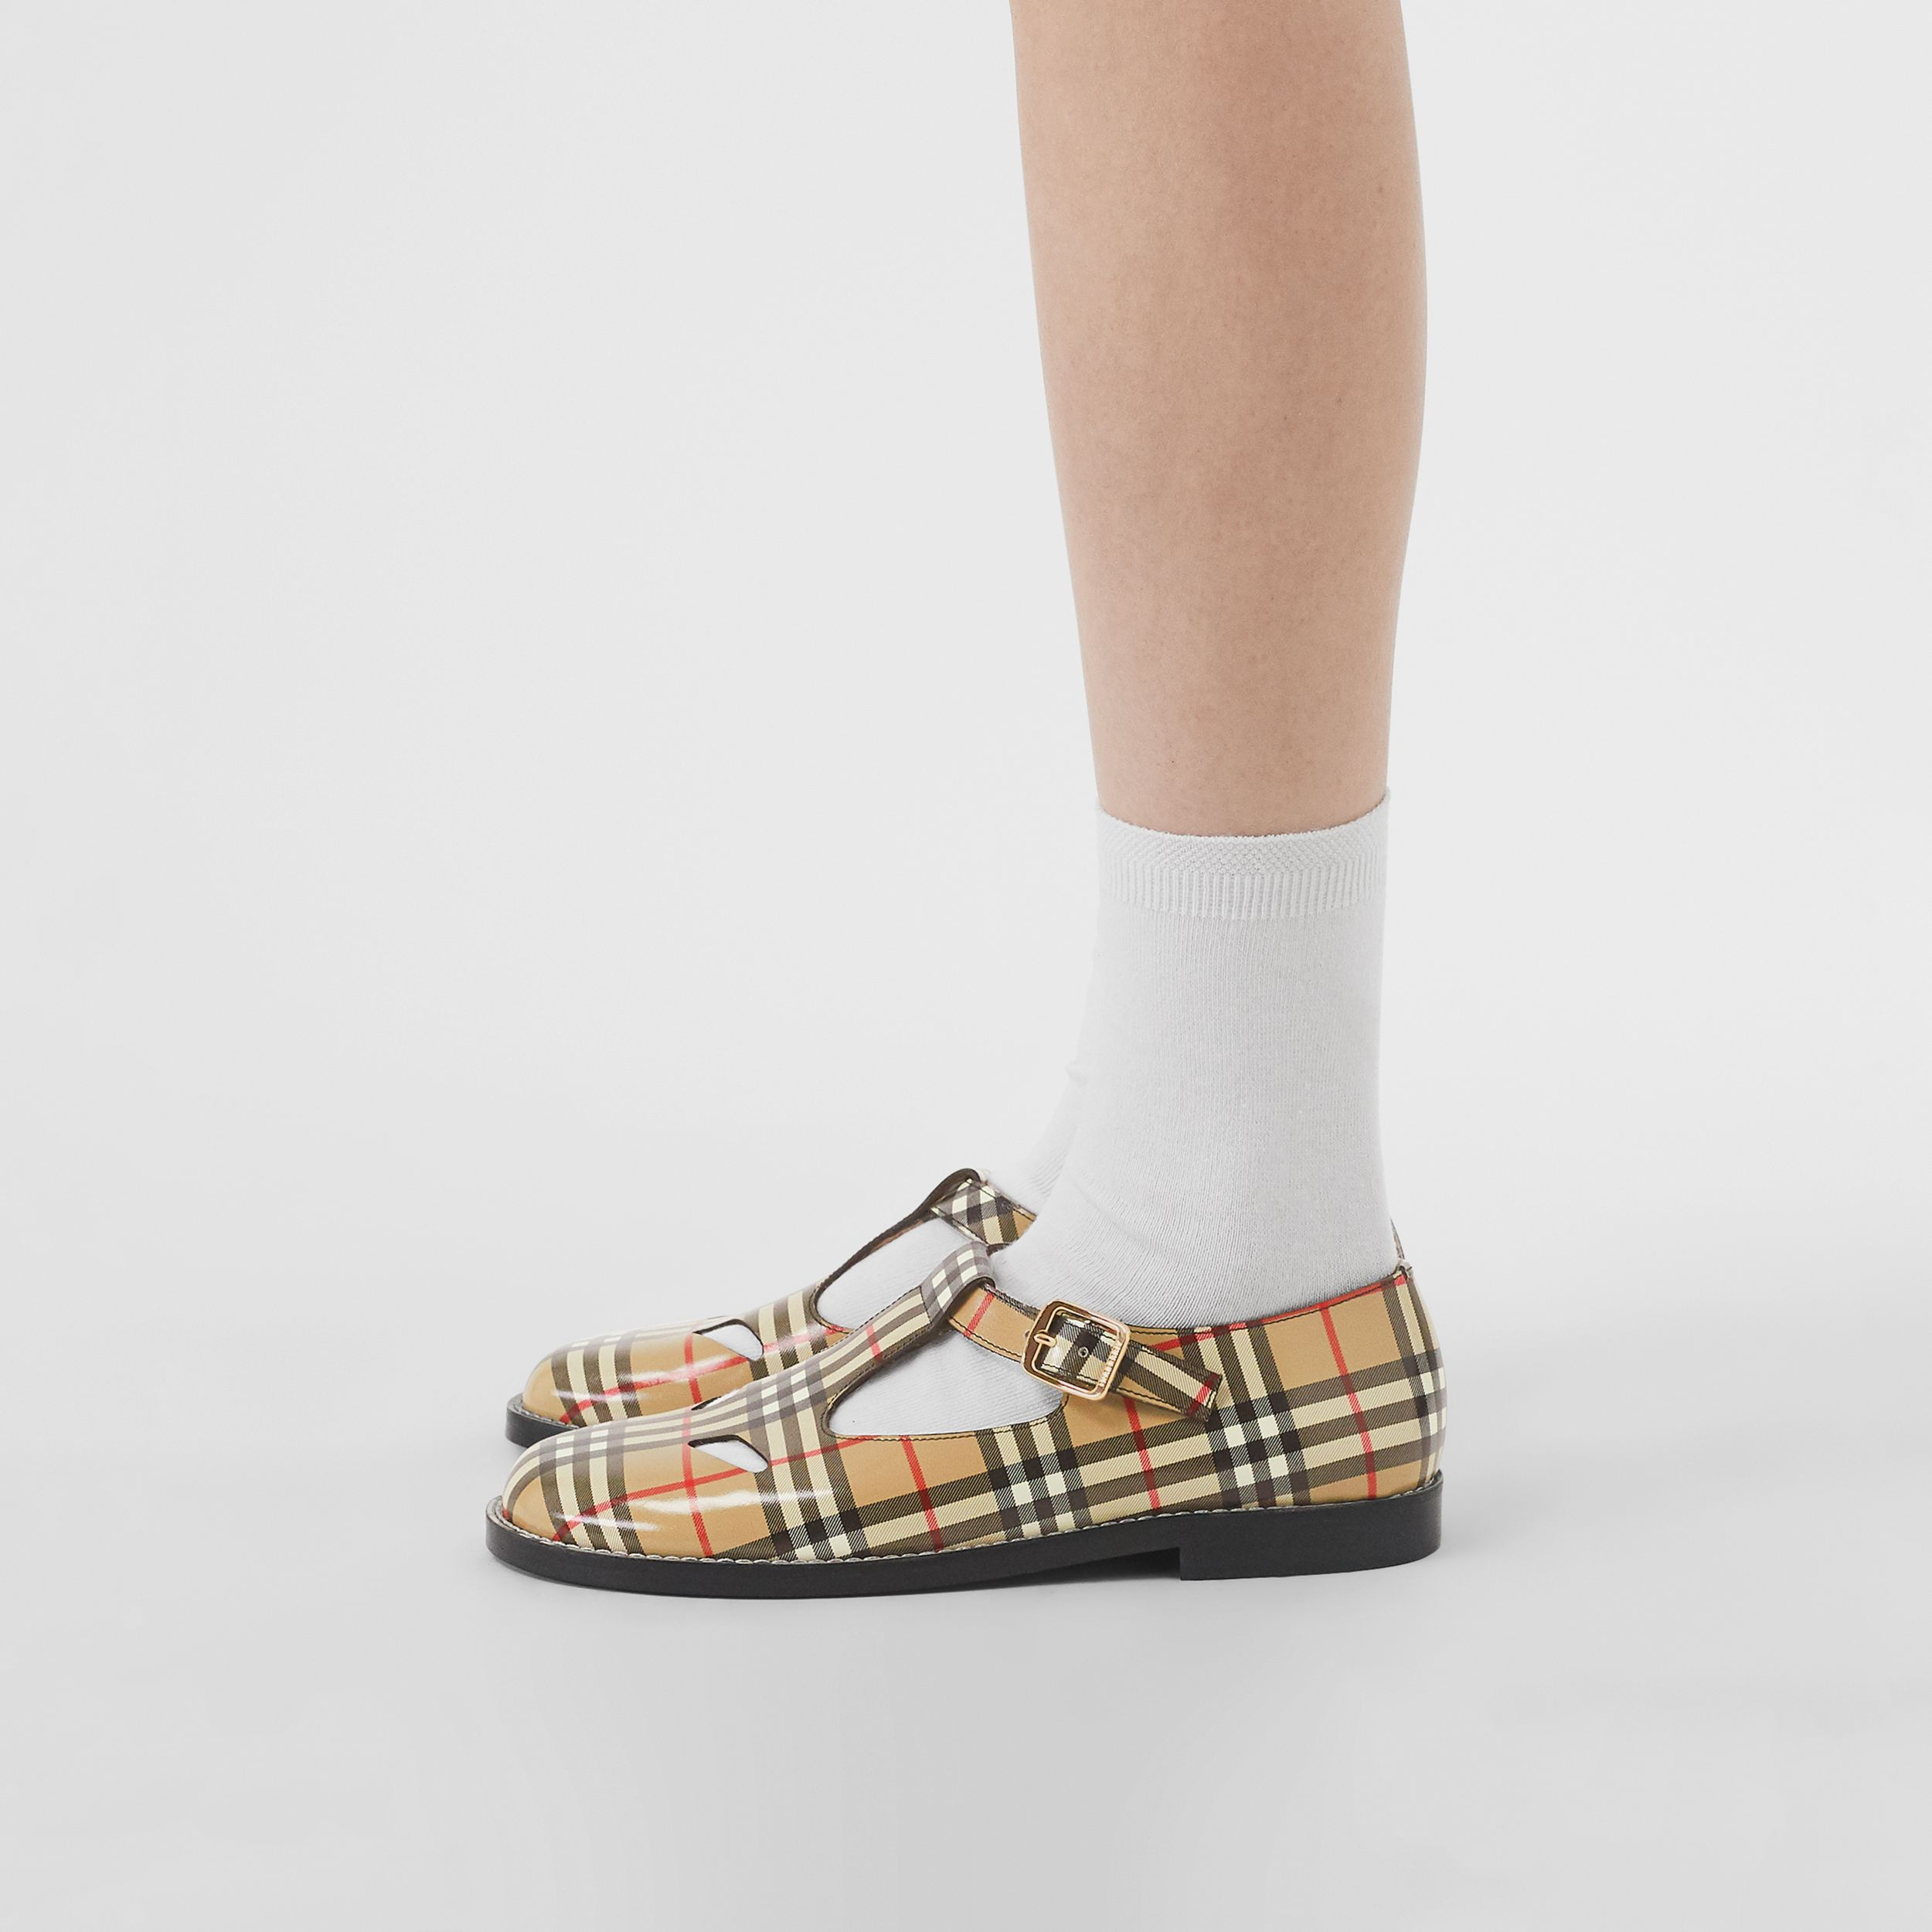 Vintage Check Leather T-bar Shoes in Archive Beige - Women | Burberry - 3